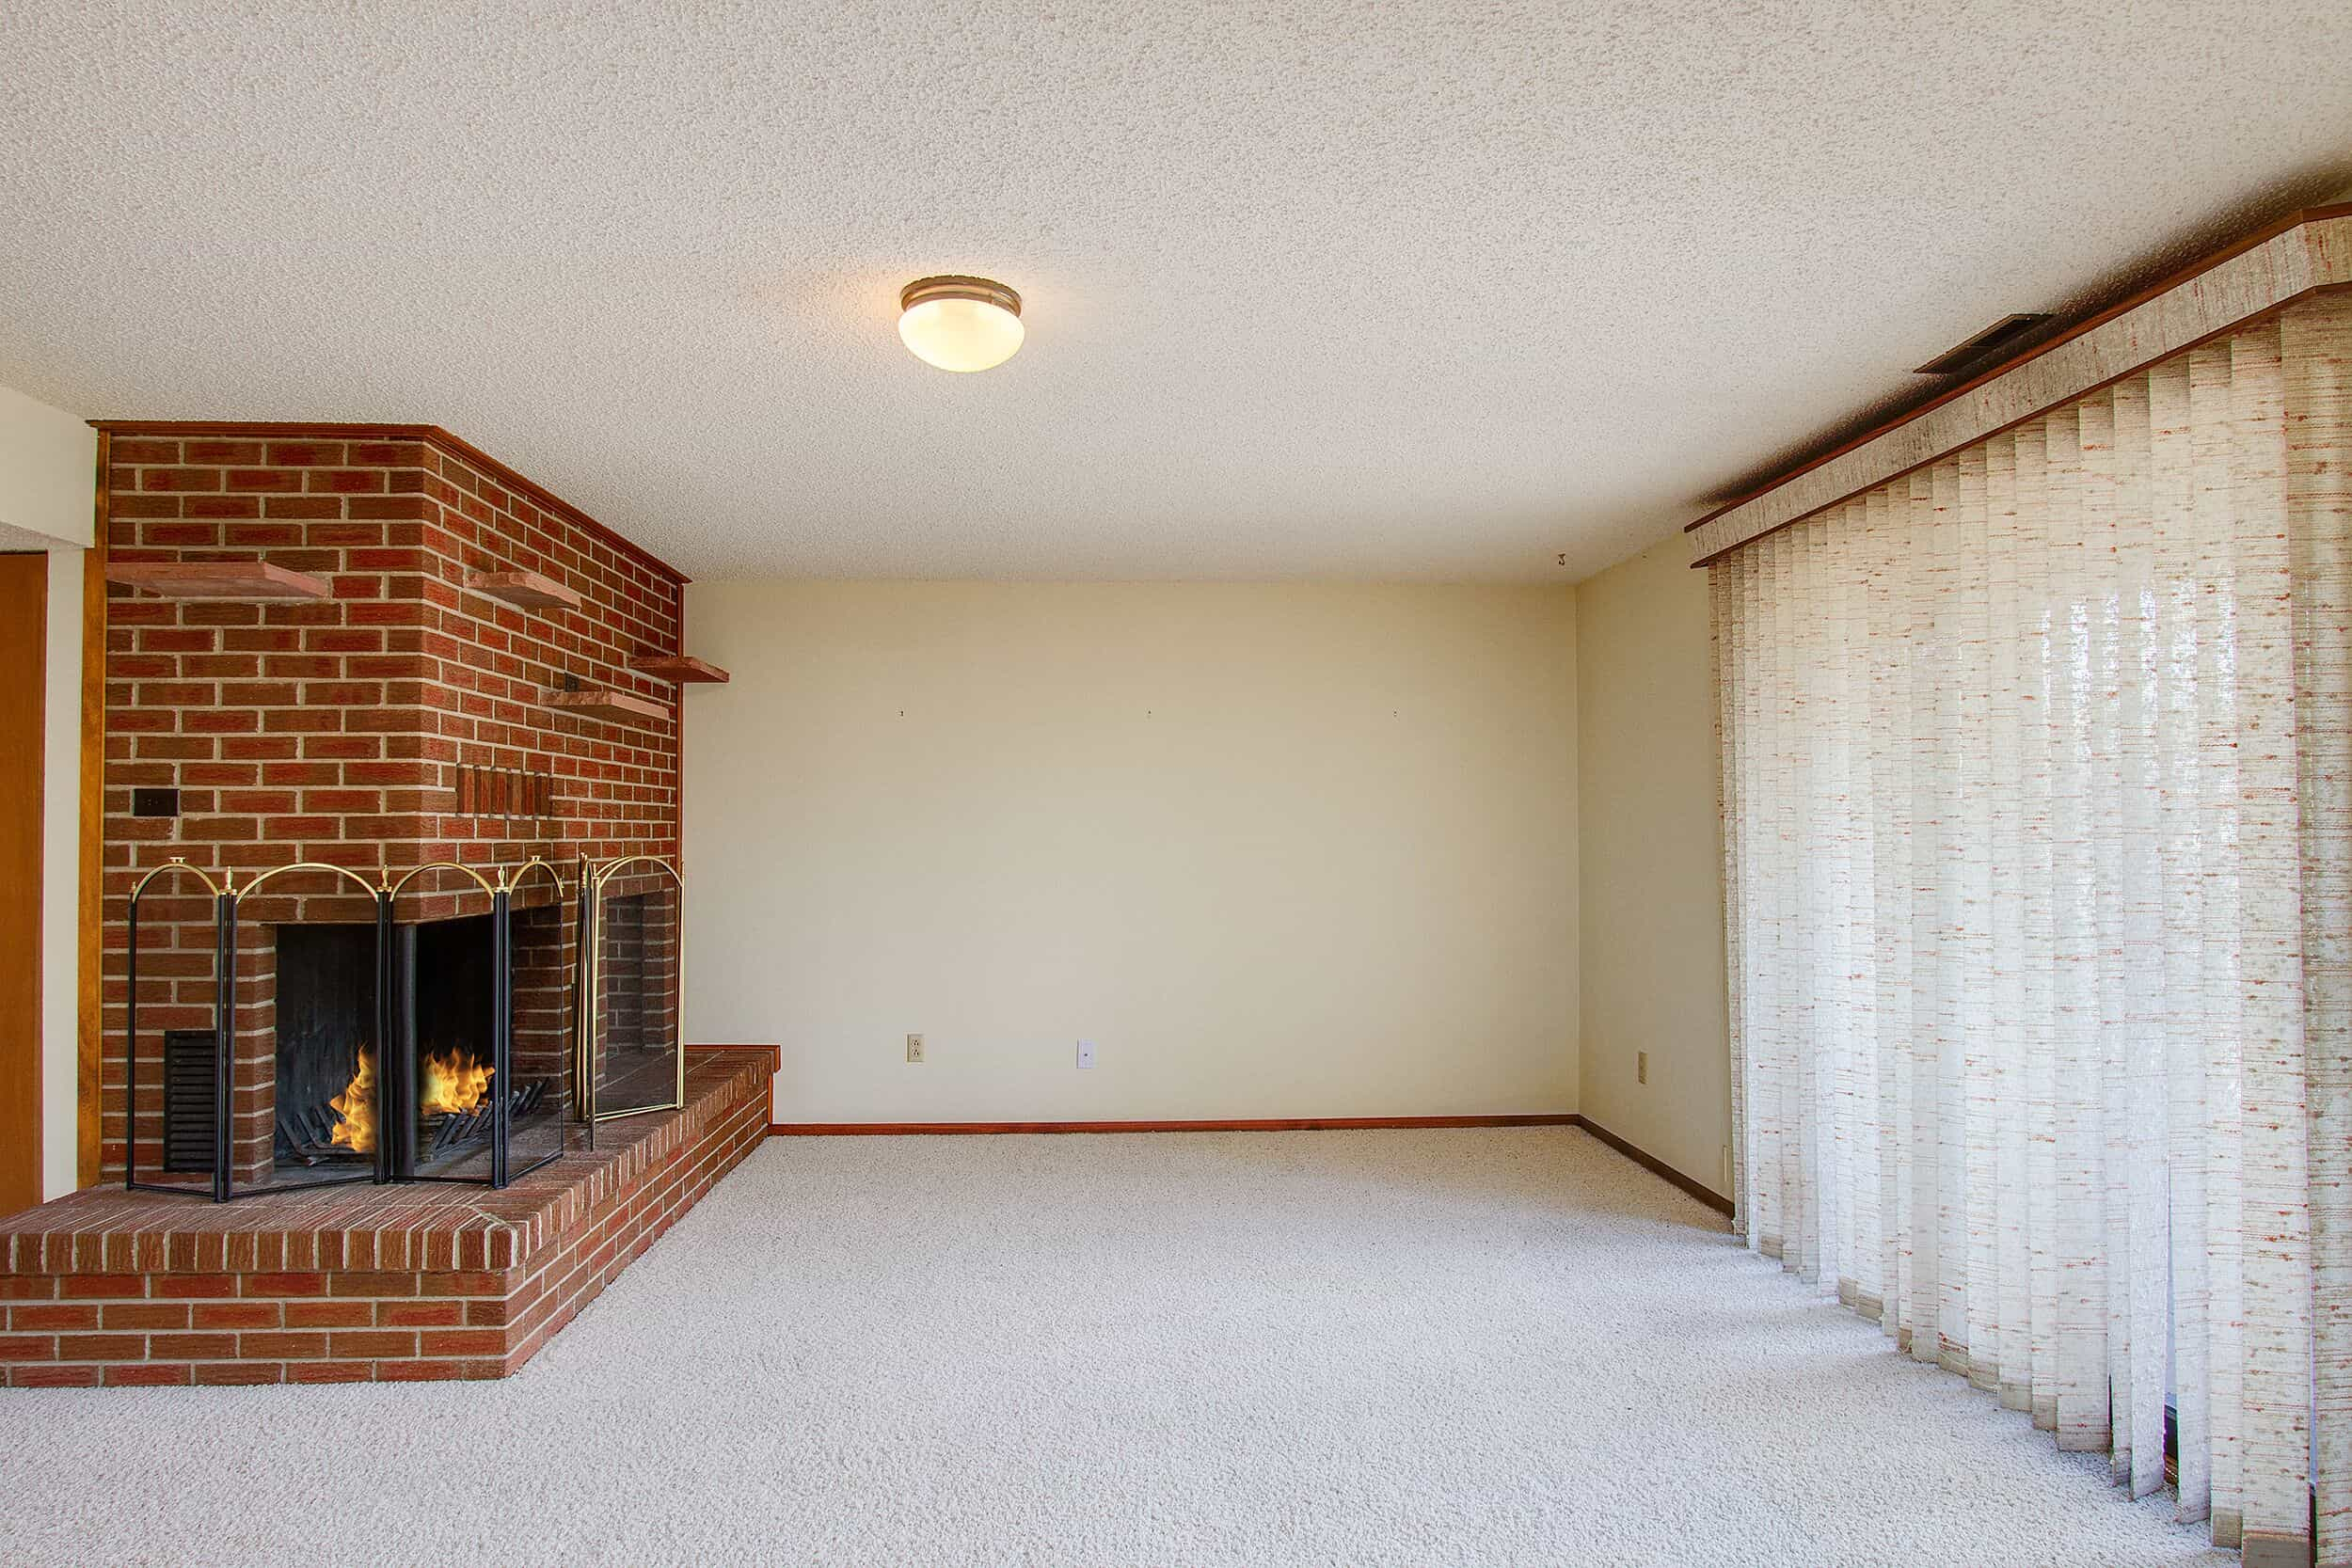 Basement Recreation Room with Brick Surround